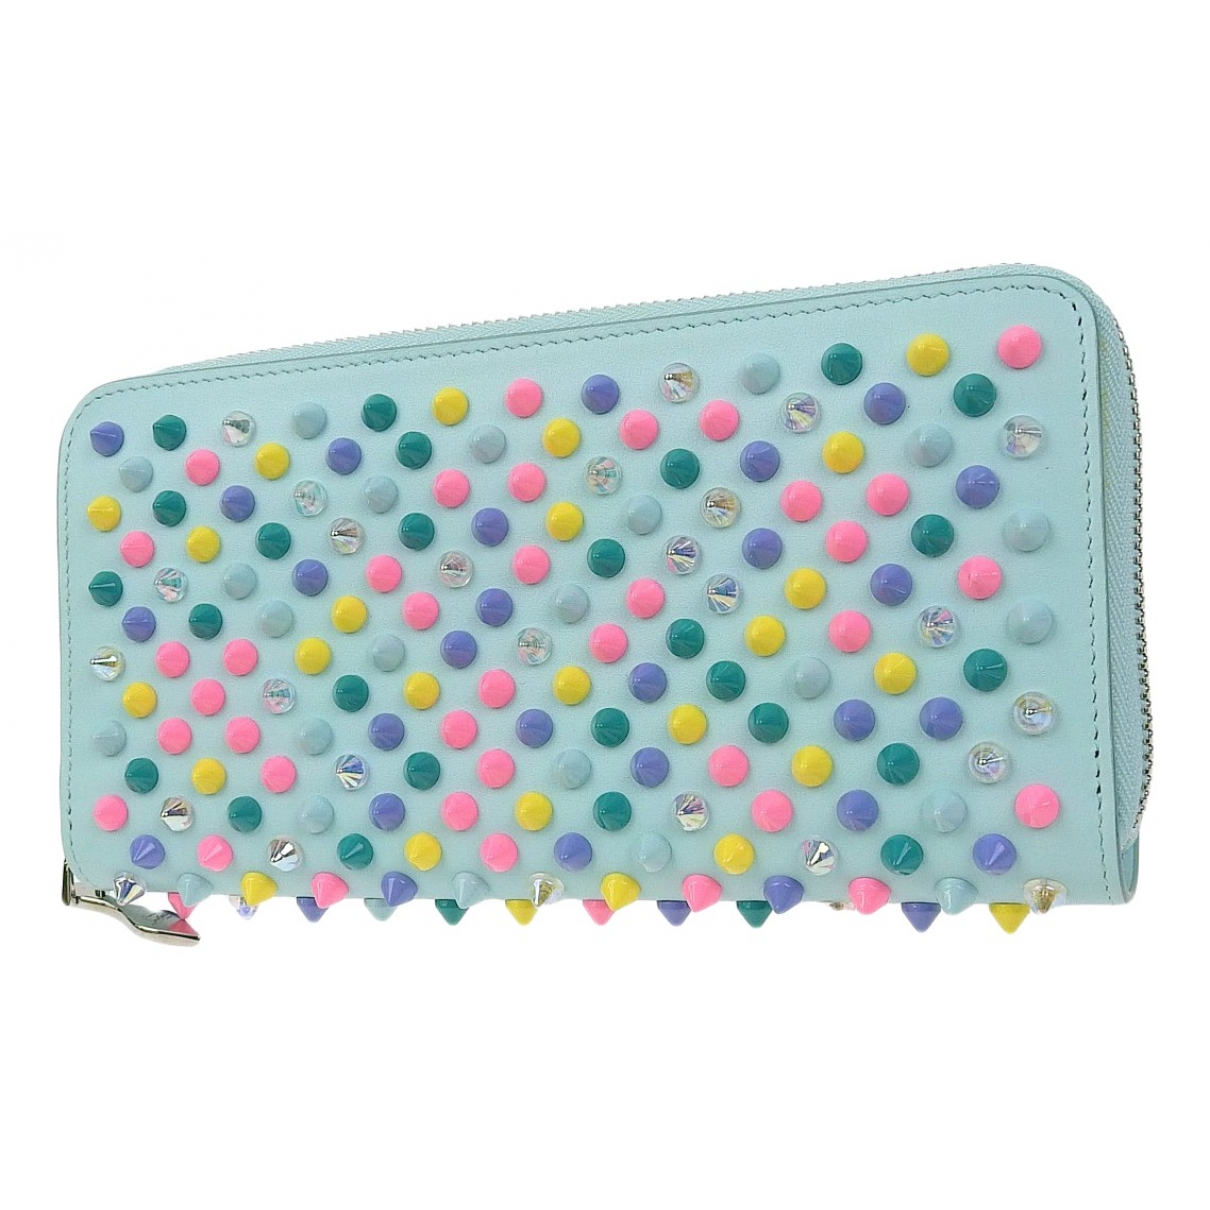 Christian Louboutin Panettone Blue Leather wallet for Women \N